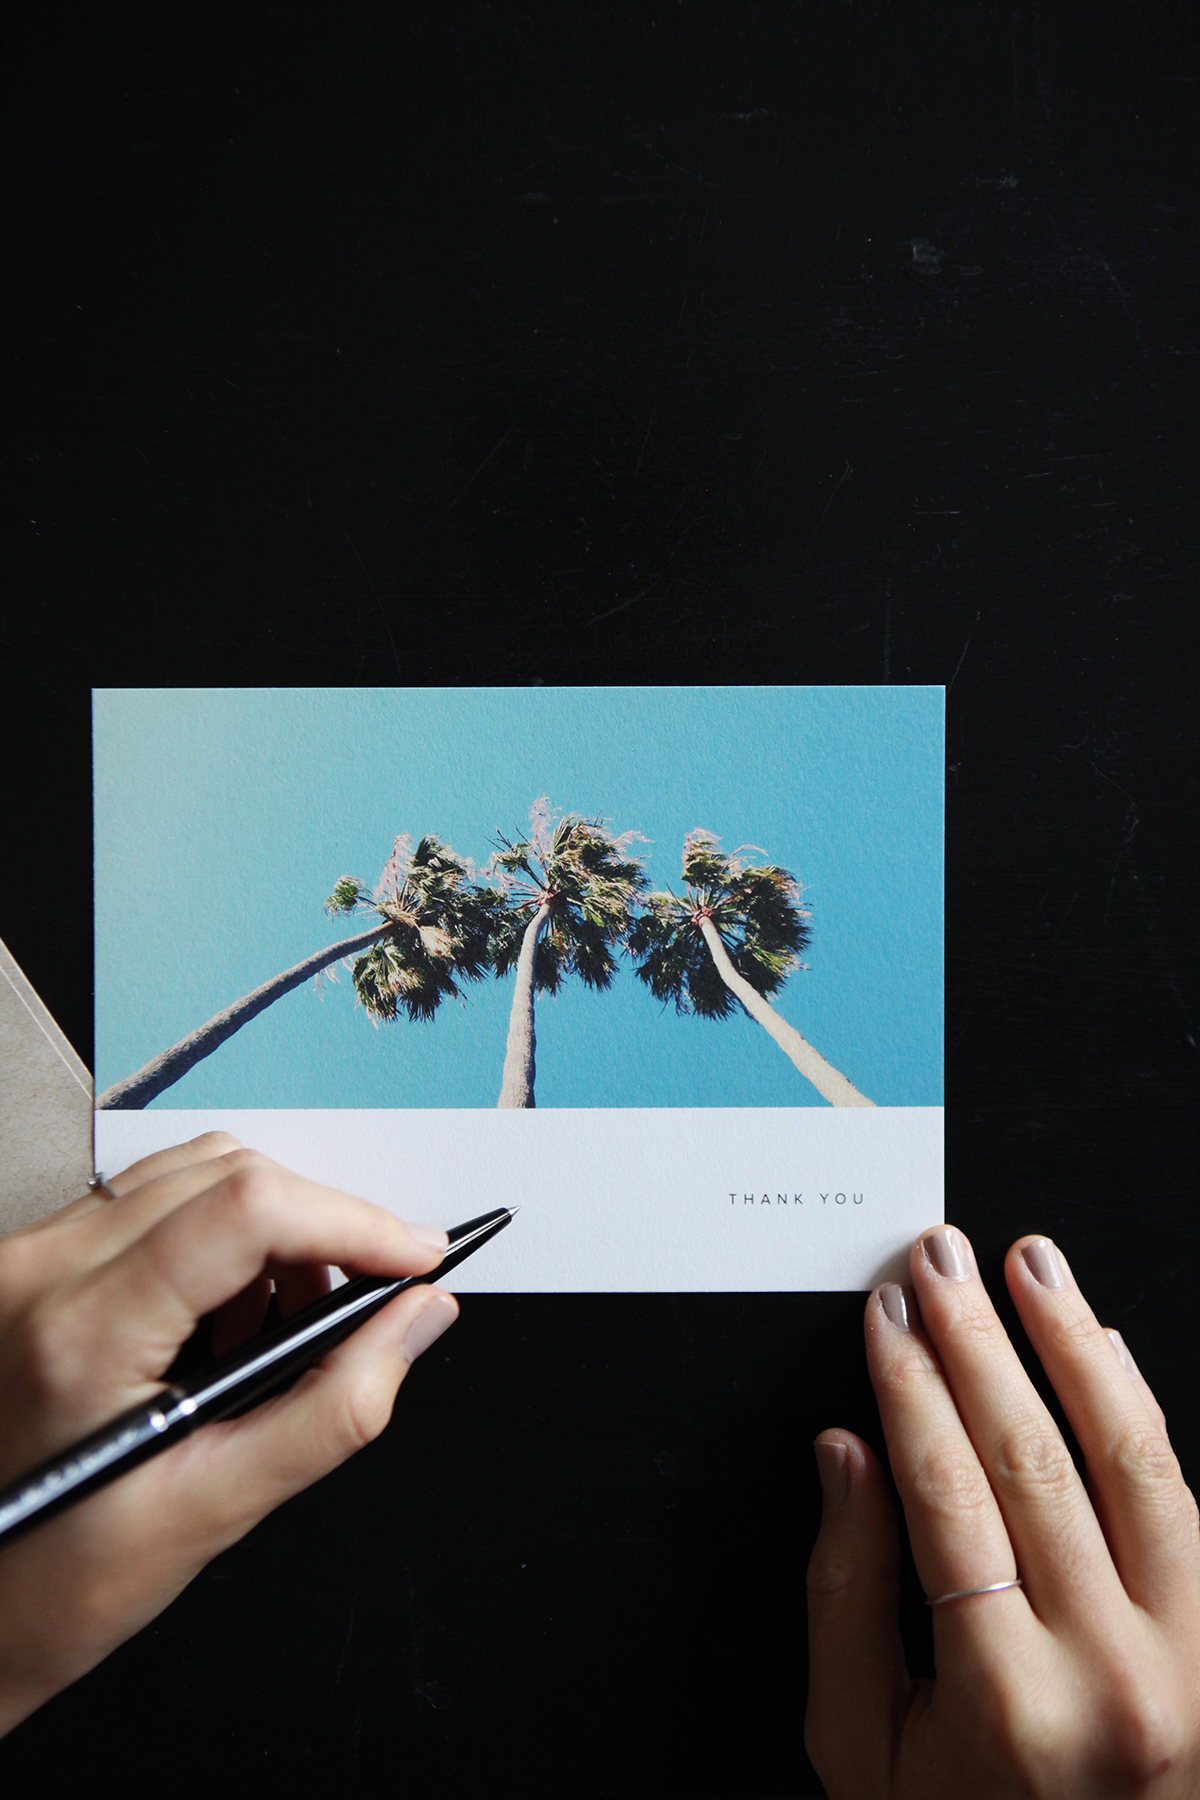 Thank you card with palm tree on front